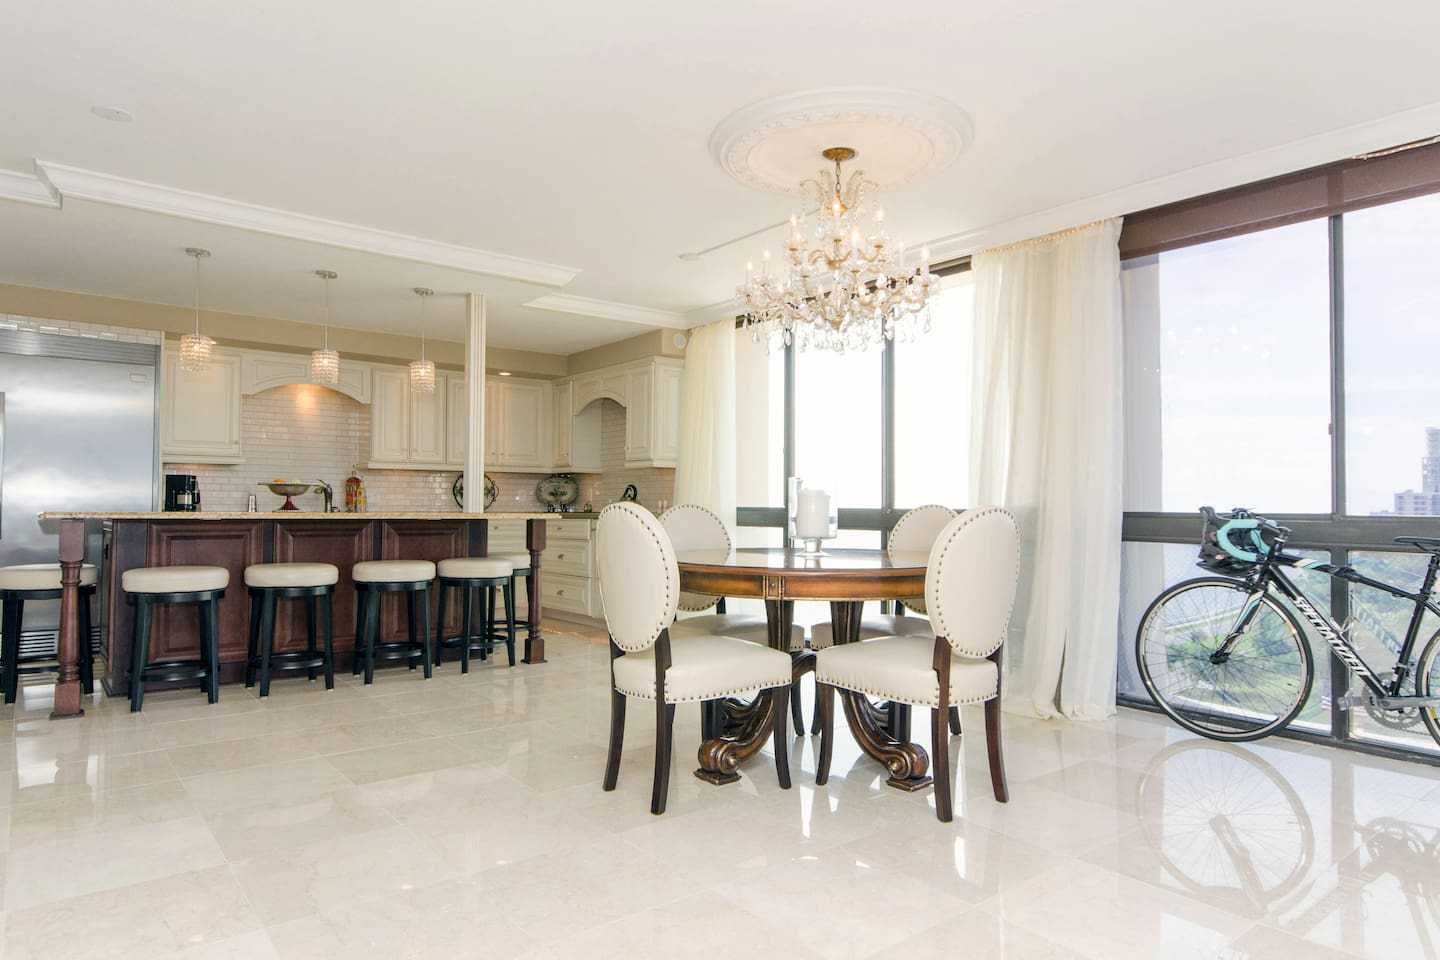 Marble floors and crystal lighting fixtures adorn the great room.